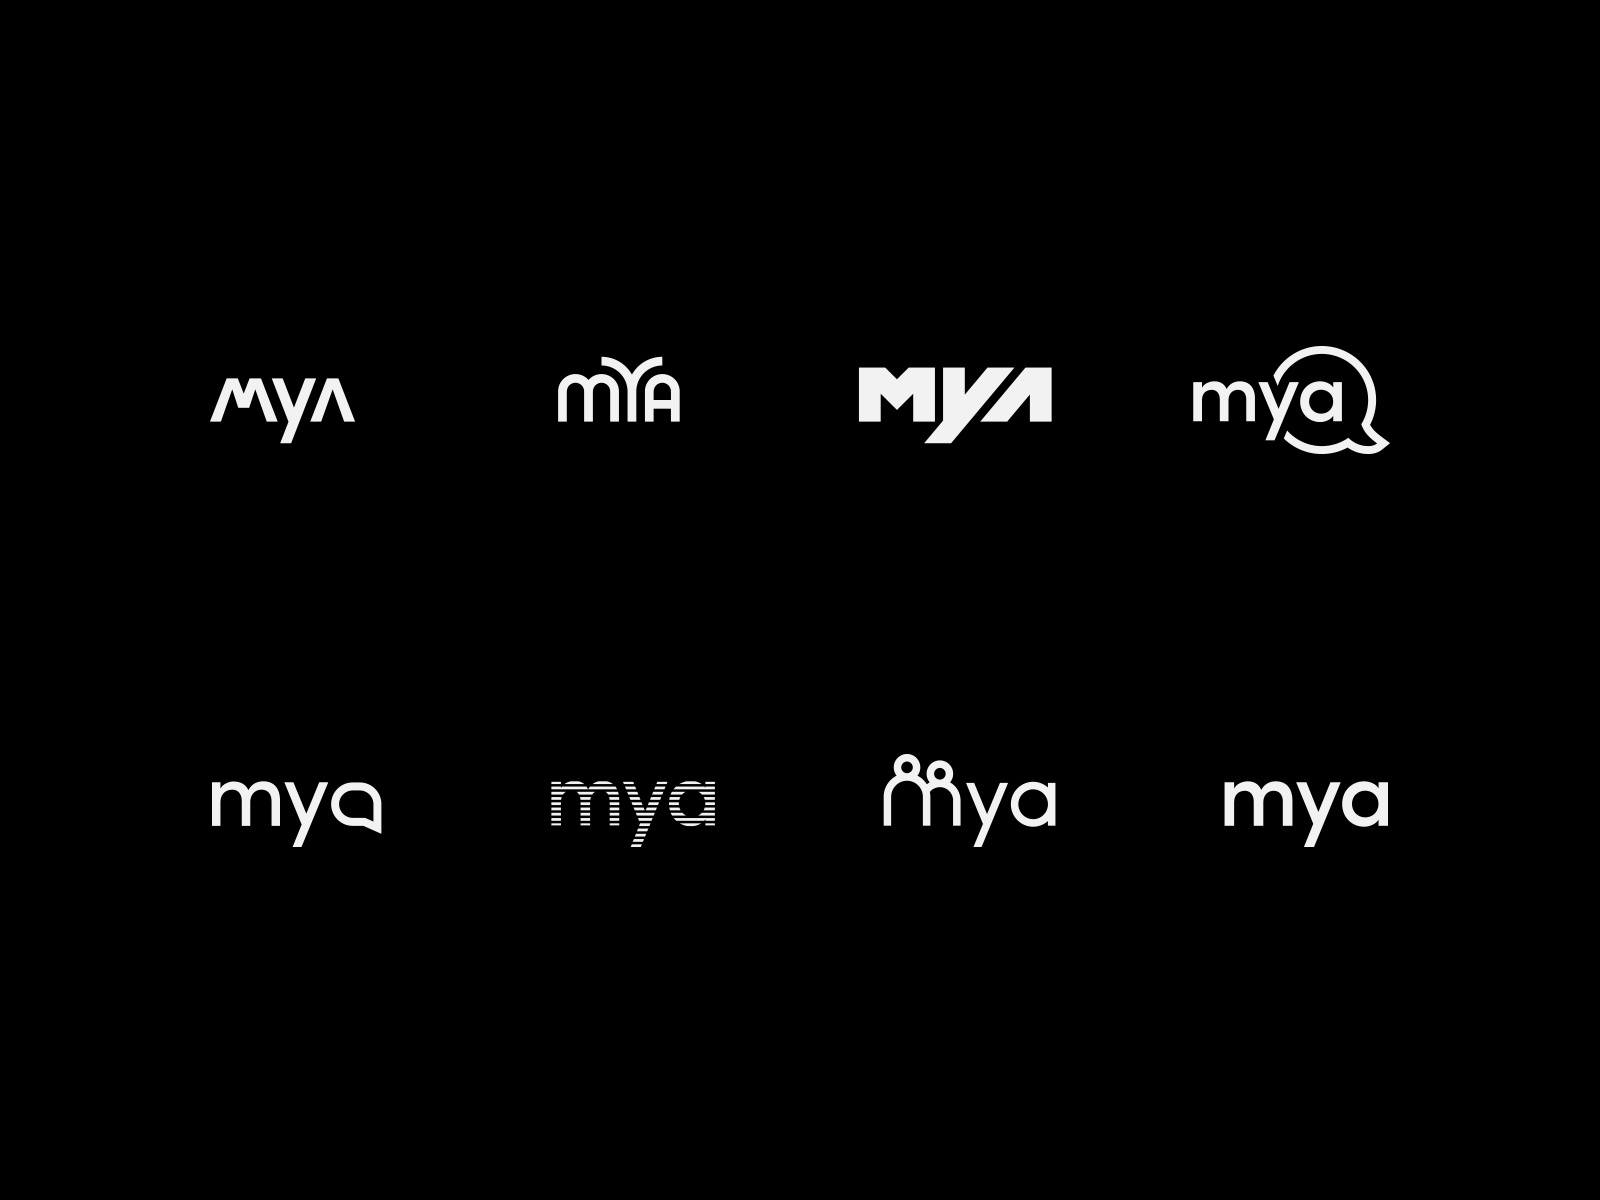 Mya logo explorations